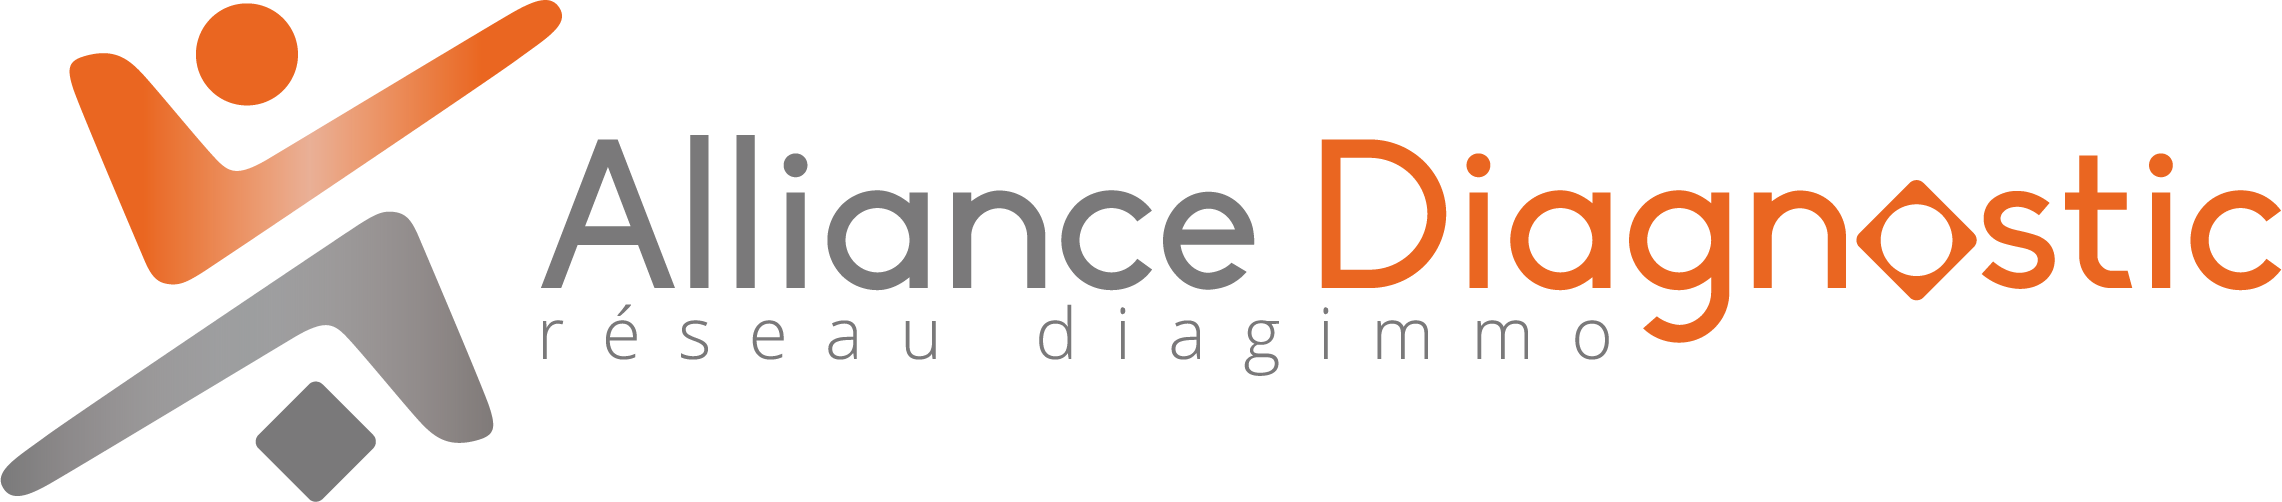 ALLIANCE DIAGNOSTIC-RESEAU DIAGIMMO